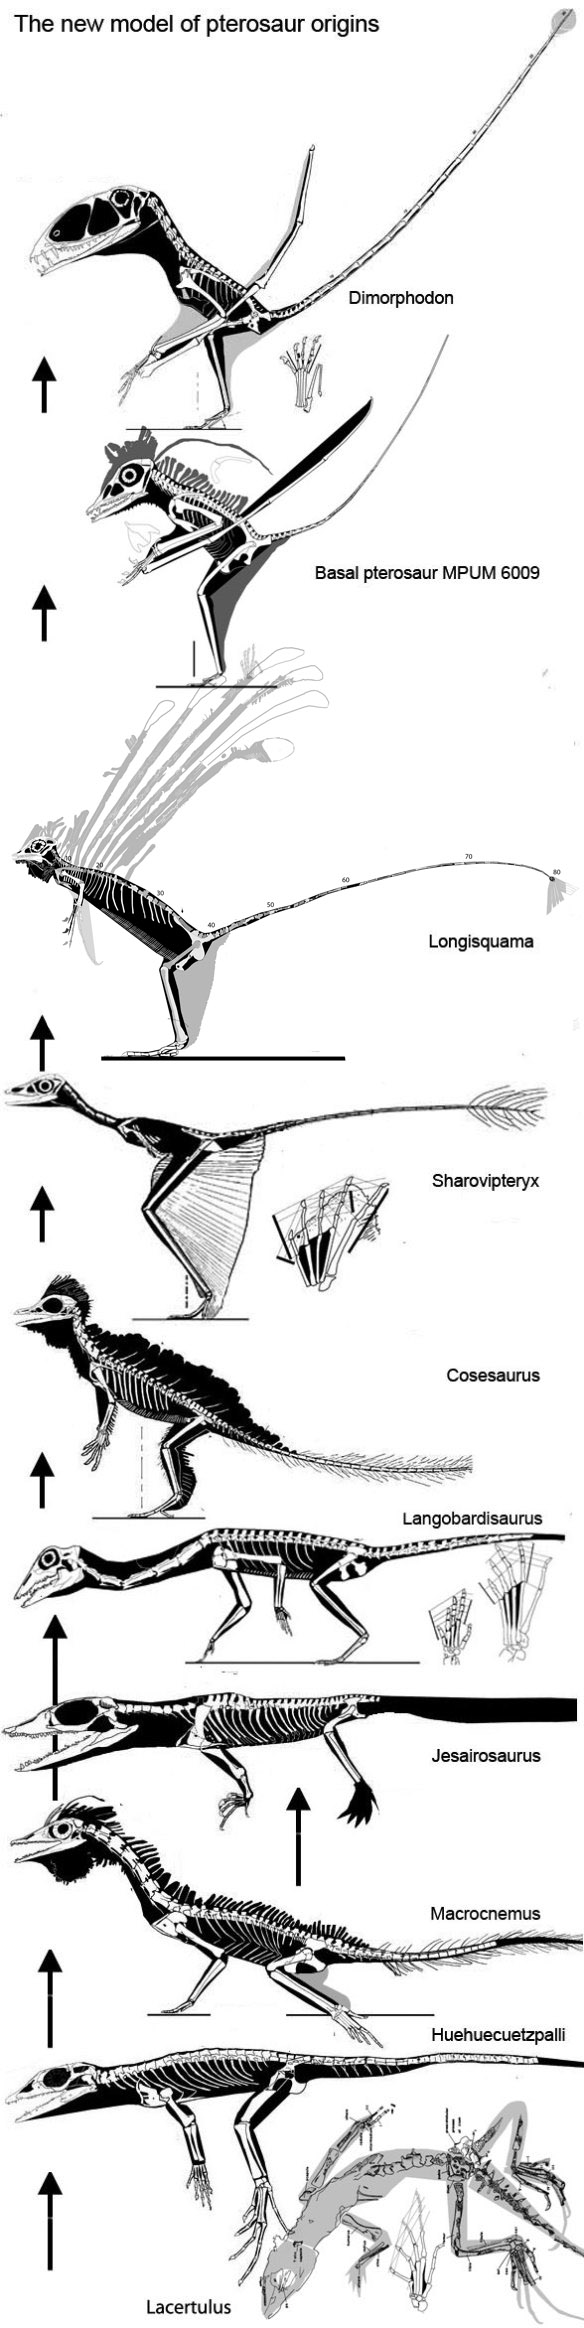 Click to enlarge. Lepidosaurs, tritosaurs and fenestrasaurs in the phylogenetic lineage preceding the origin of the Pterosauria.